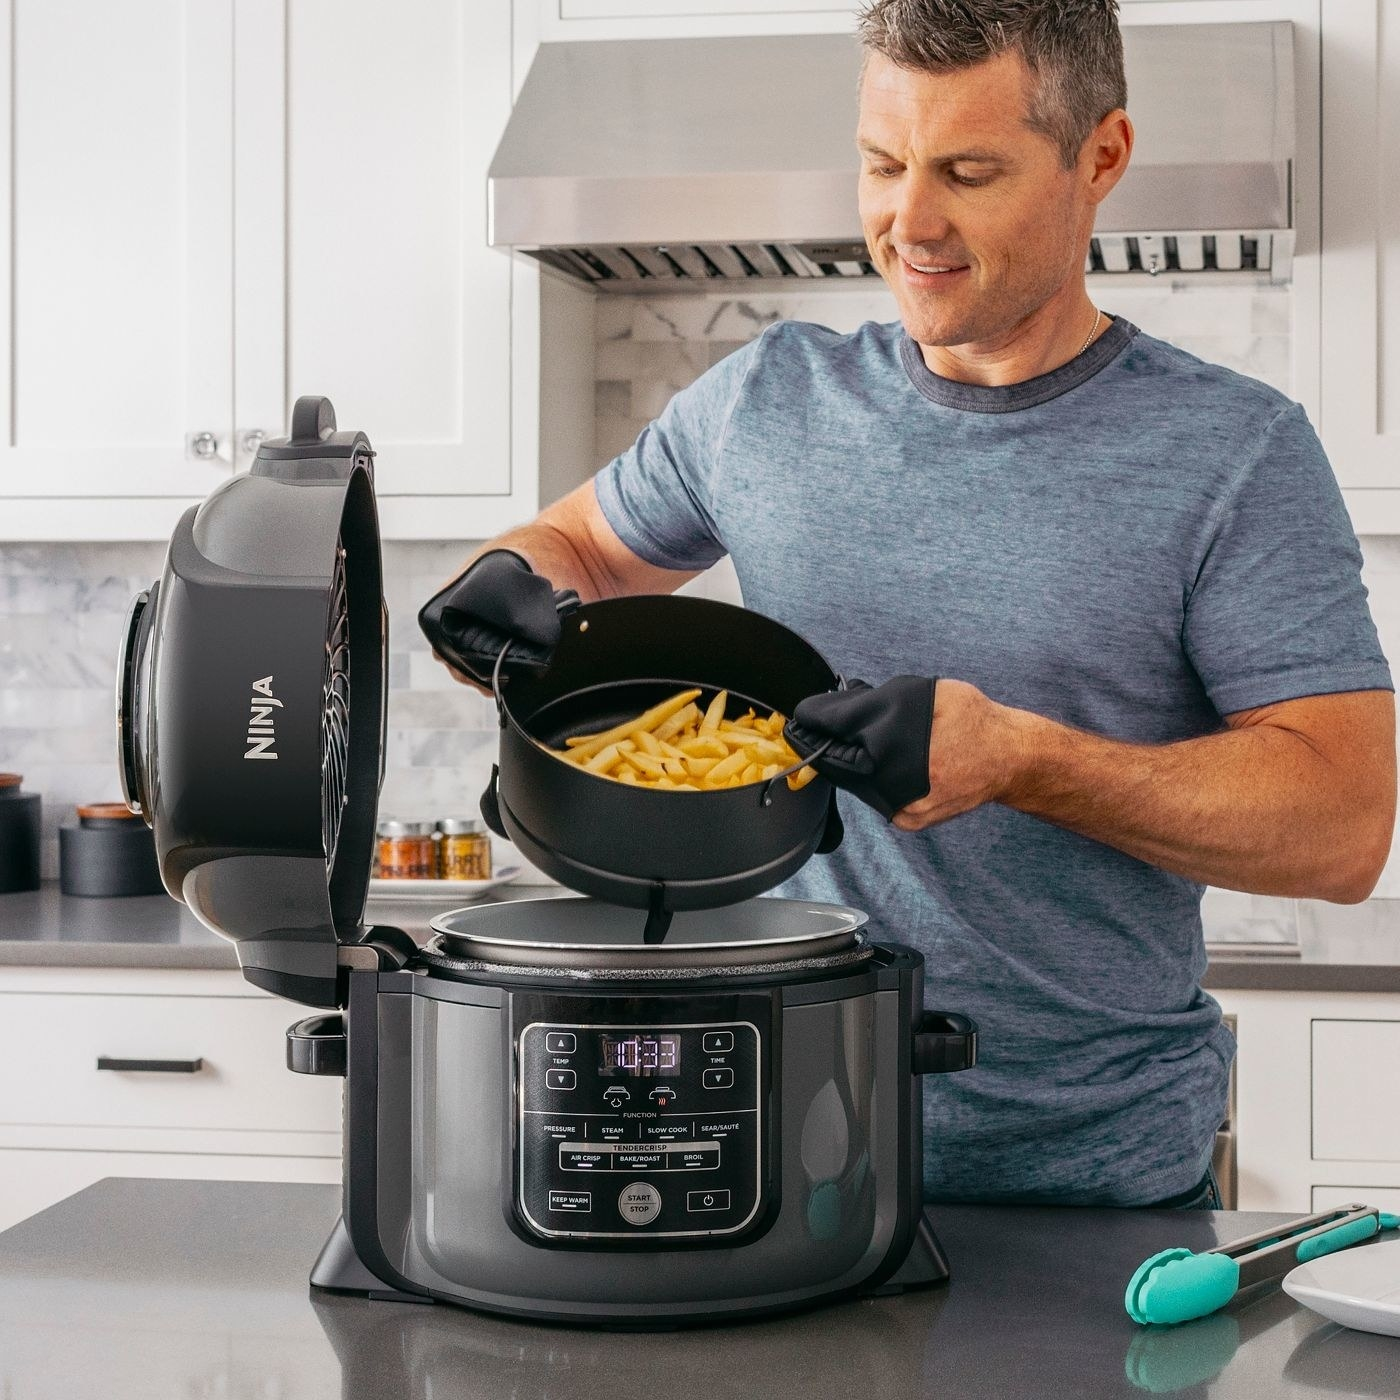 Person removing cooked French fries from the air fryer